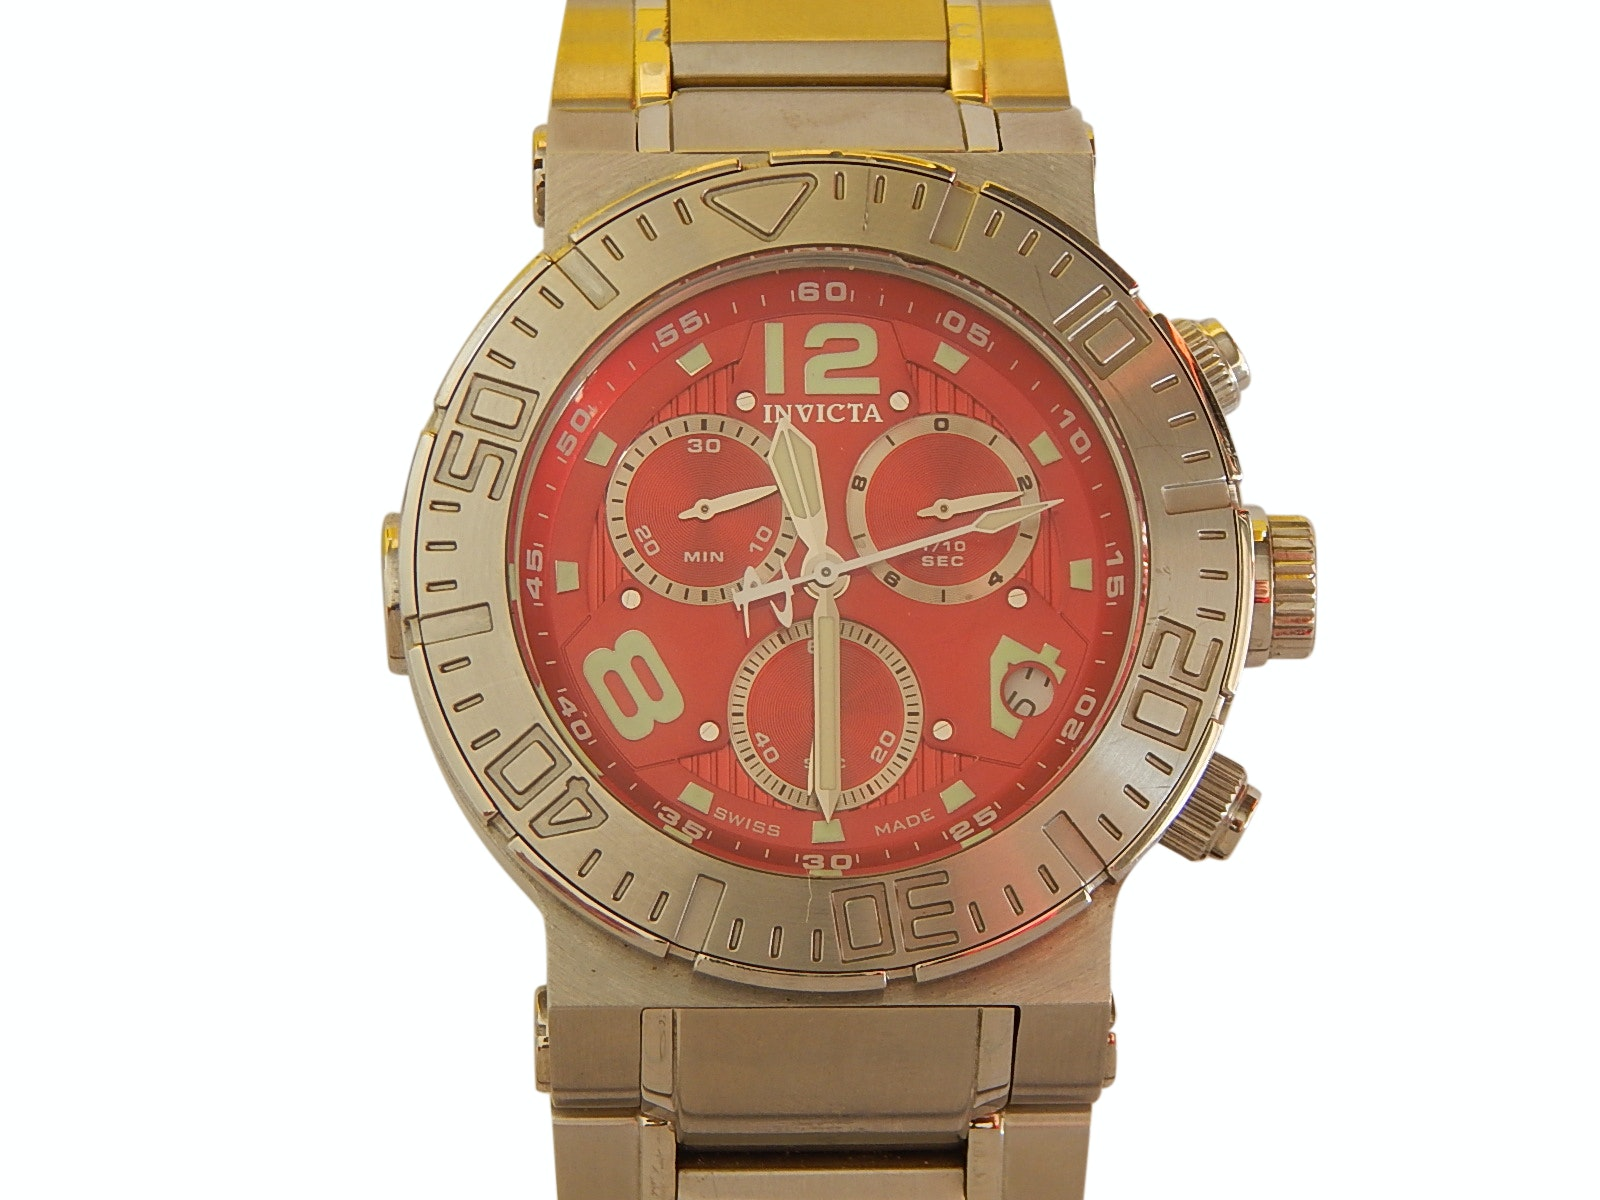 Invicta Silver-Tone Stainless Steel Wristwatch with Red Display Model